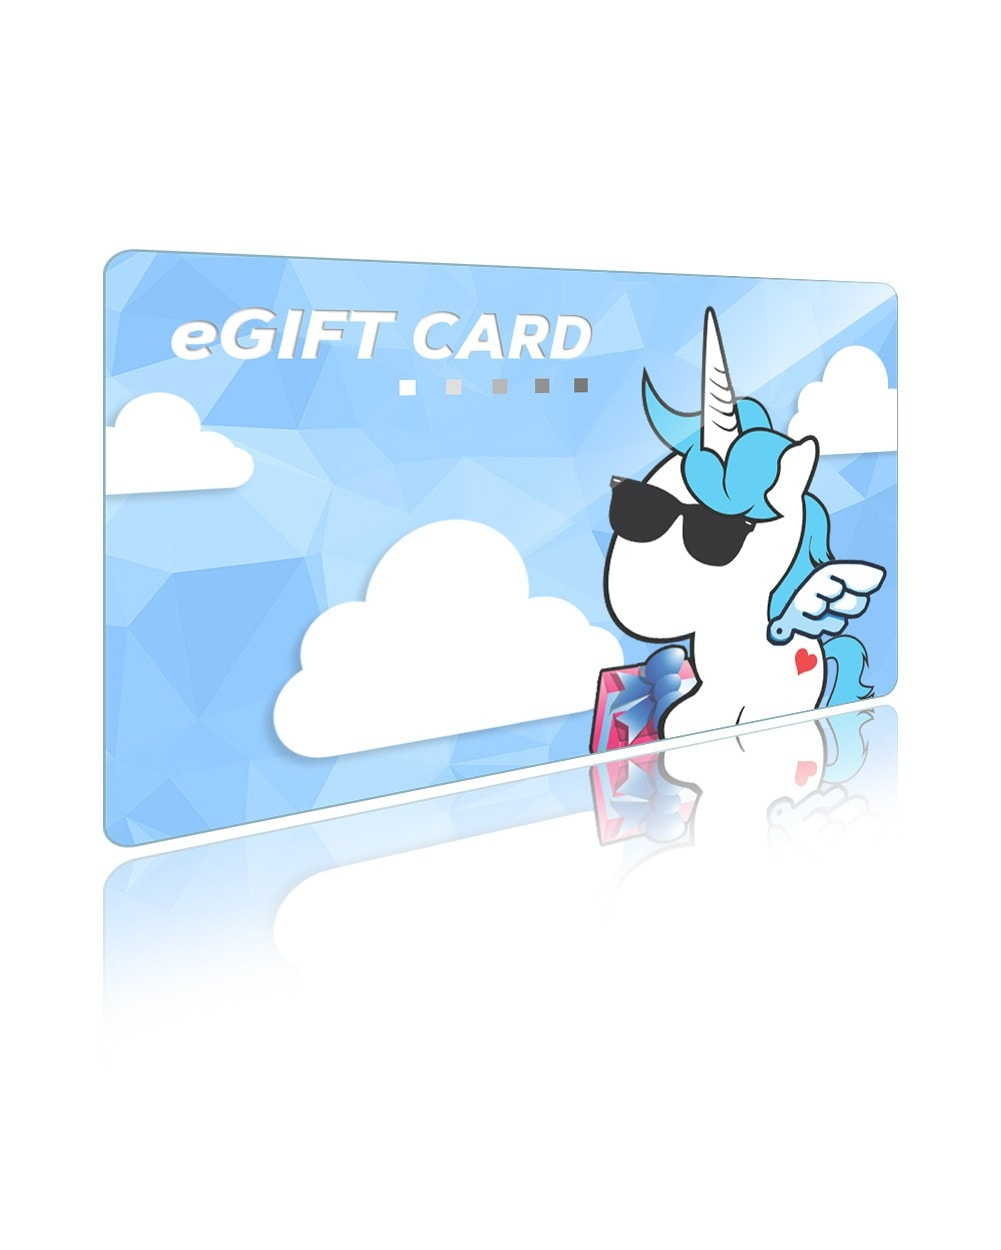 iheartraves egift card